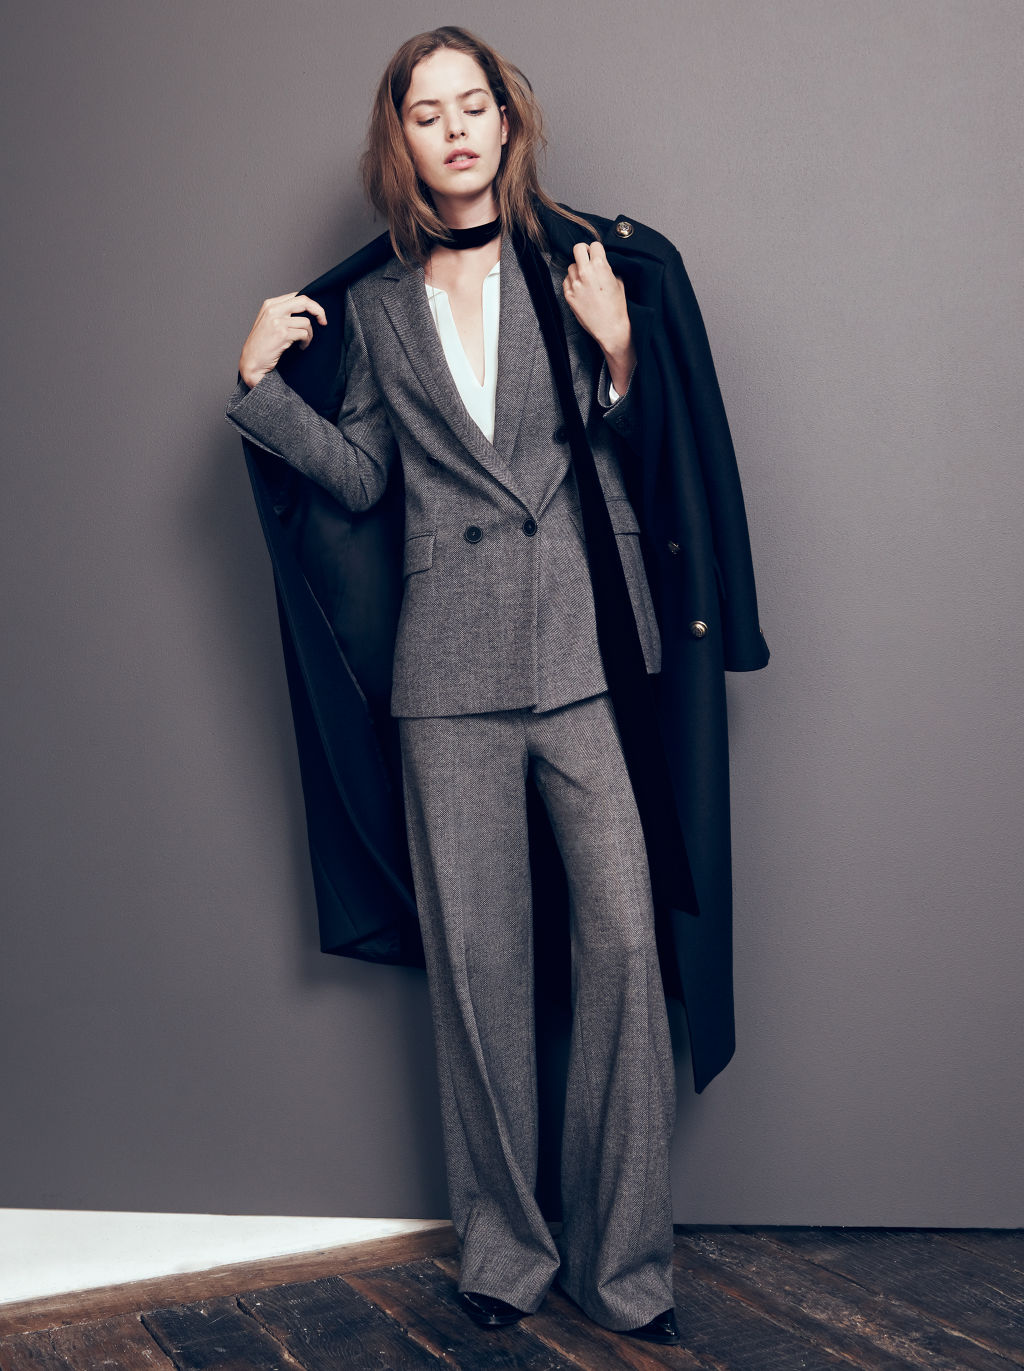 Suits fall 2015 Mango